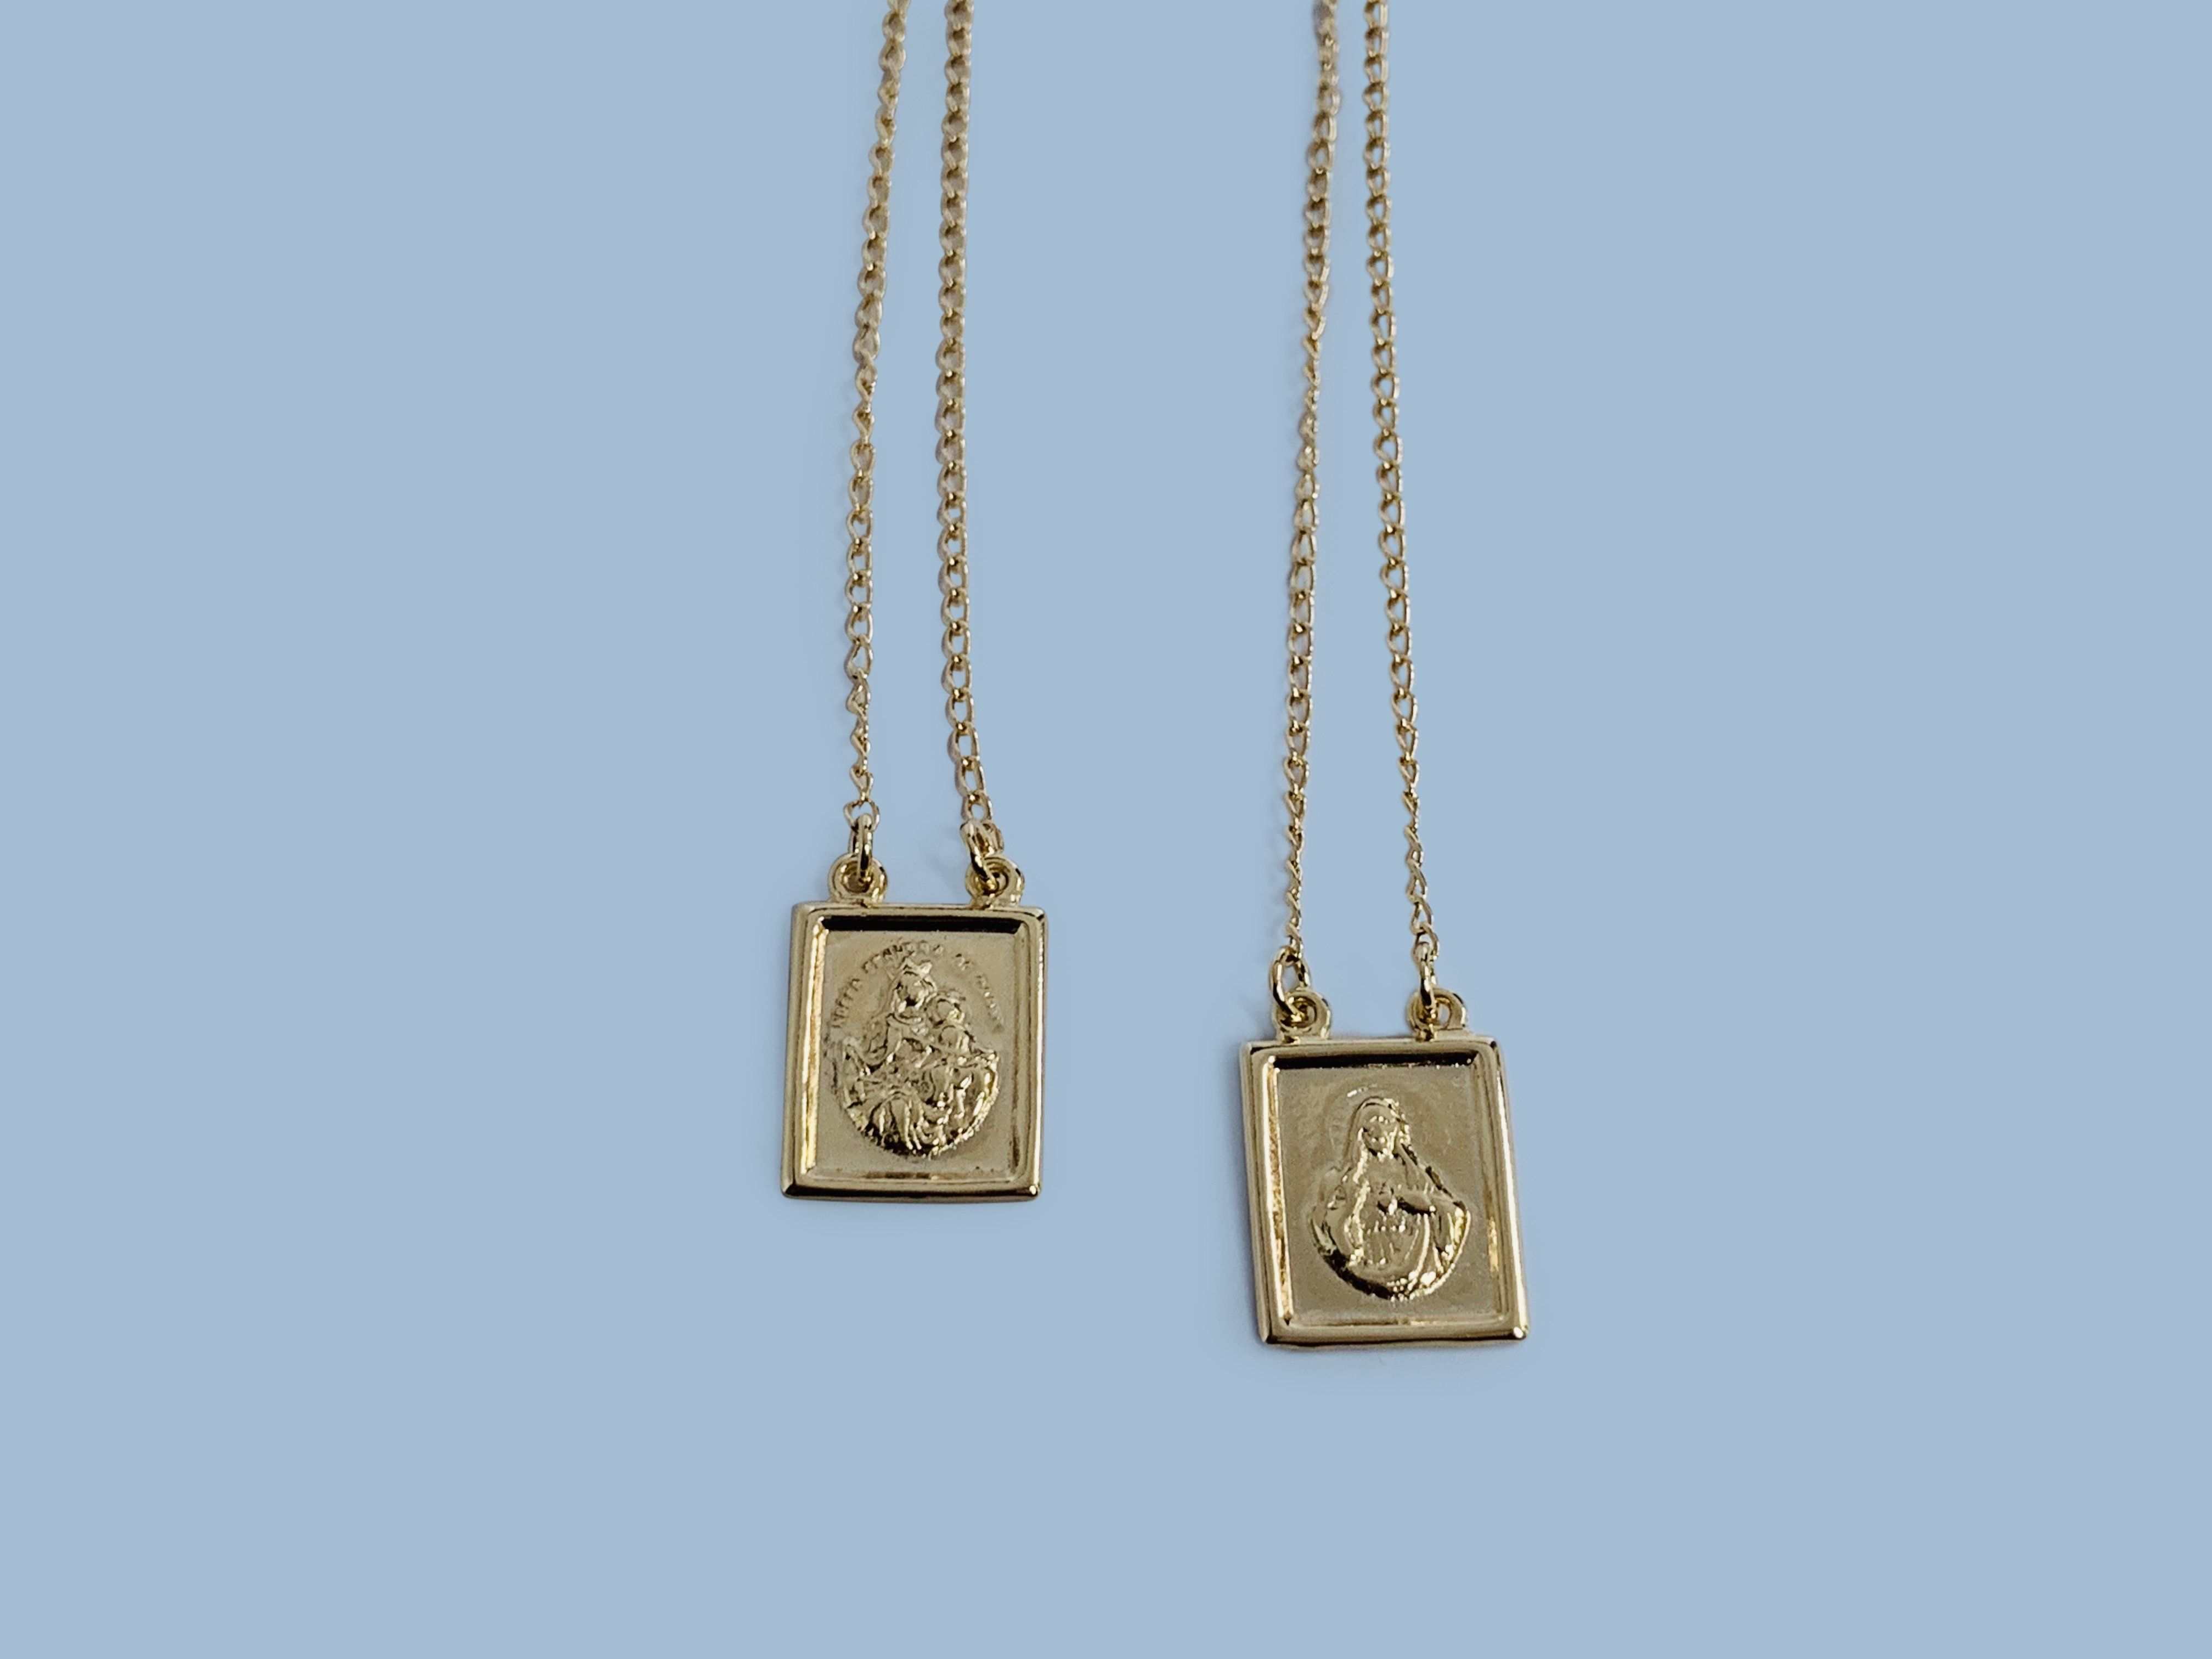 Wear This Scapular Necklace As A Symbol Of Devotion To The Blessed Virgin Mary And As A Sign Of Trust In Her Promi Scapular Necklace Scapular Catholic Necklace